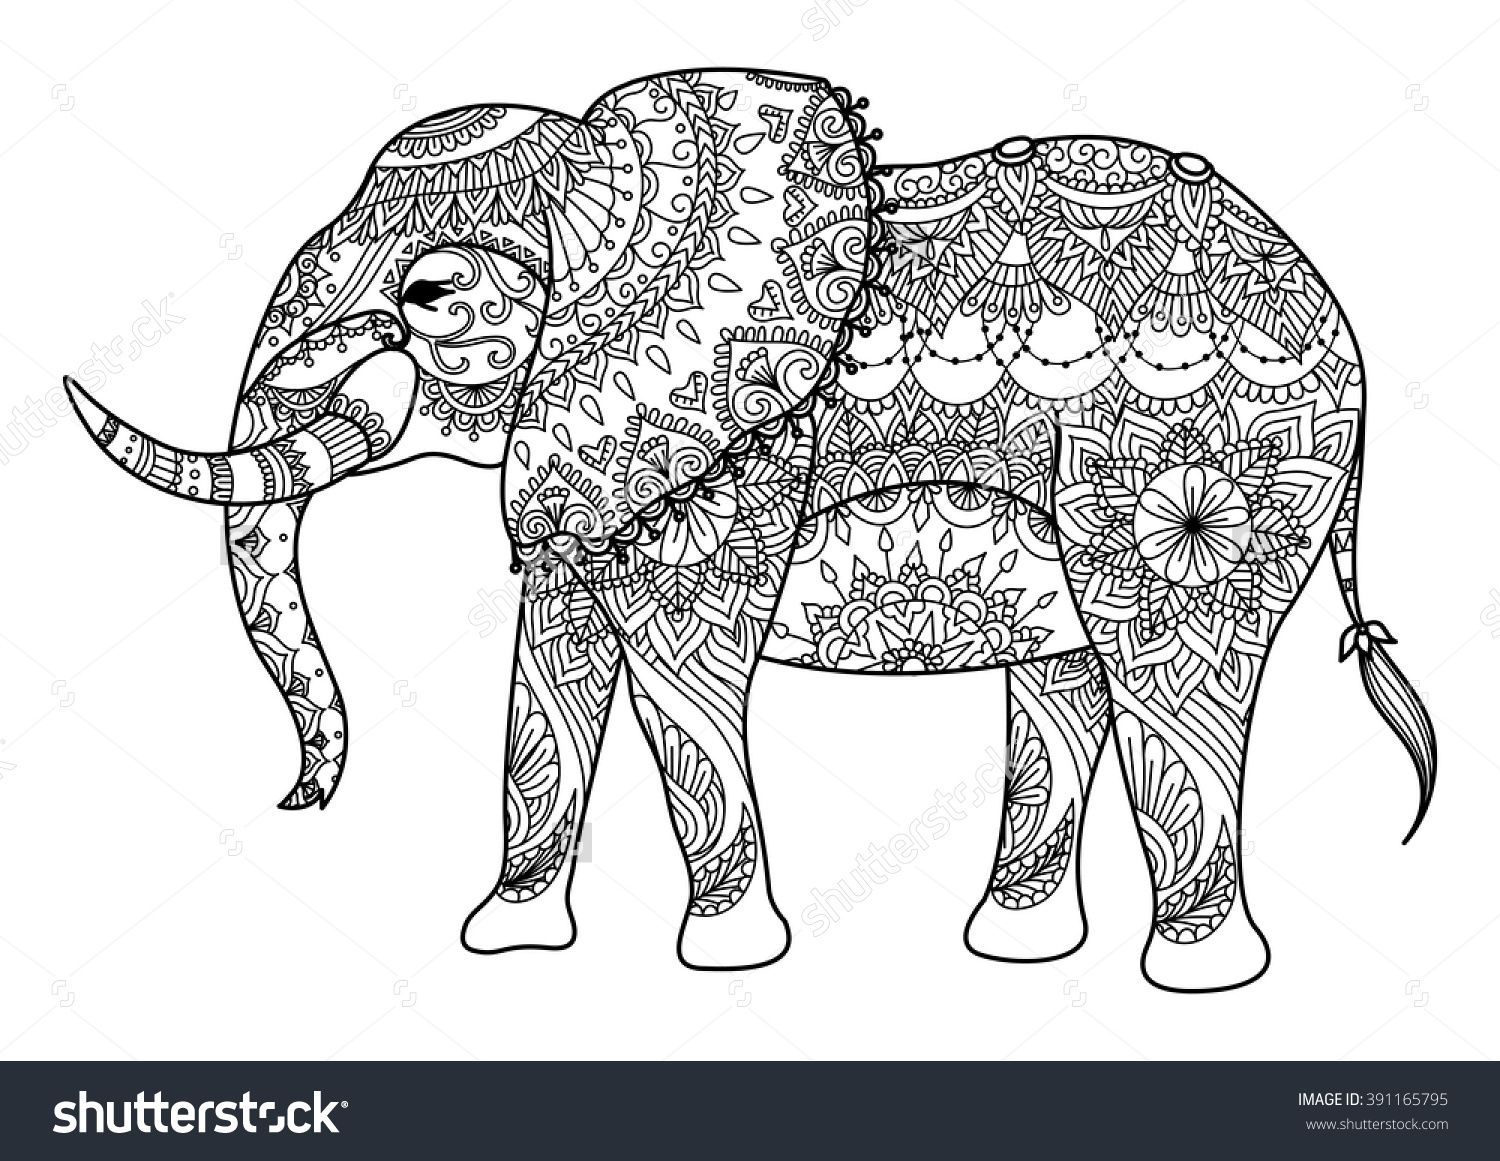 mandala elephant line art design for card tattoo banner coloring book and so - Coloring Page Elephant Design